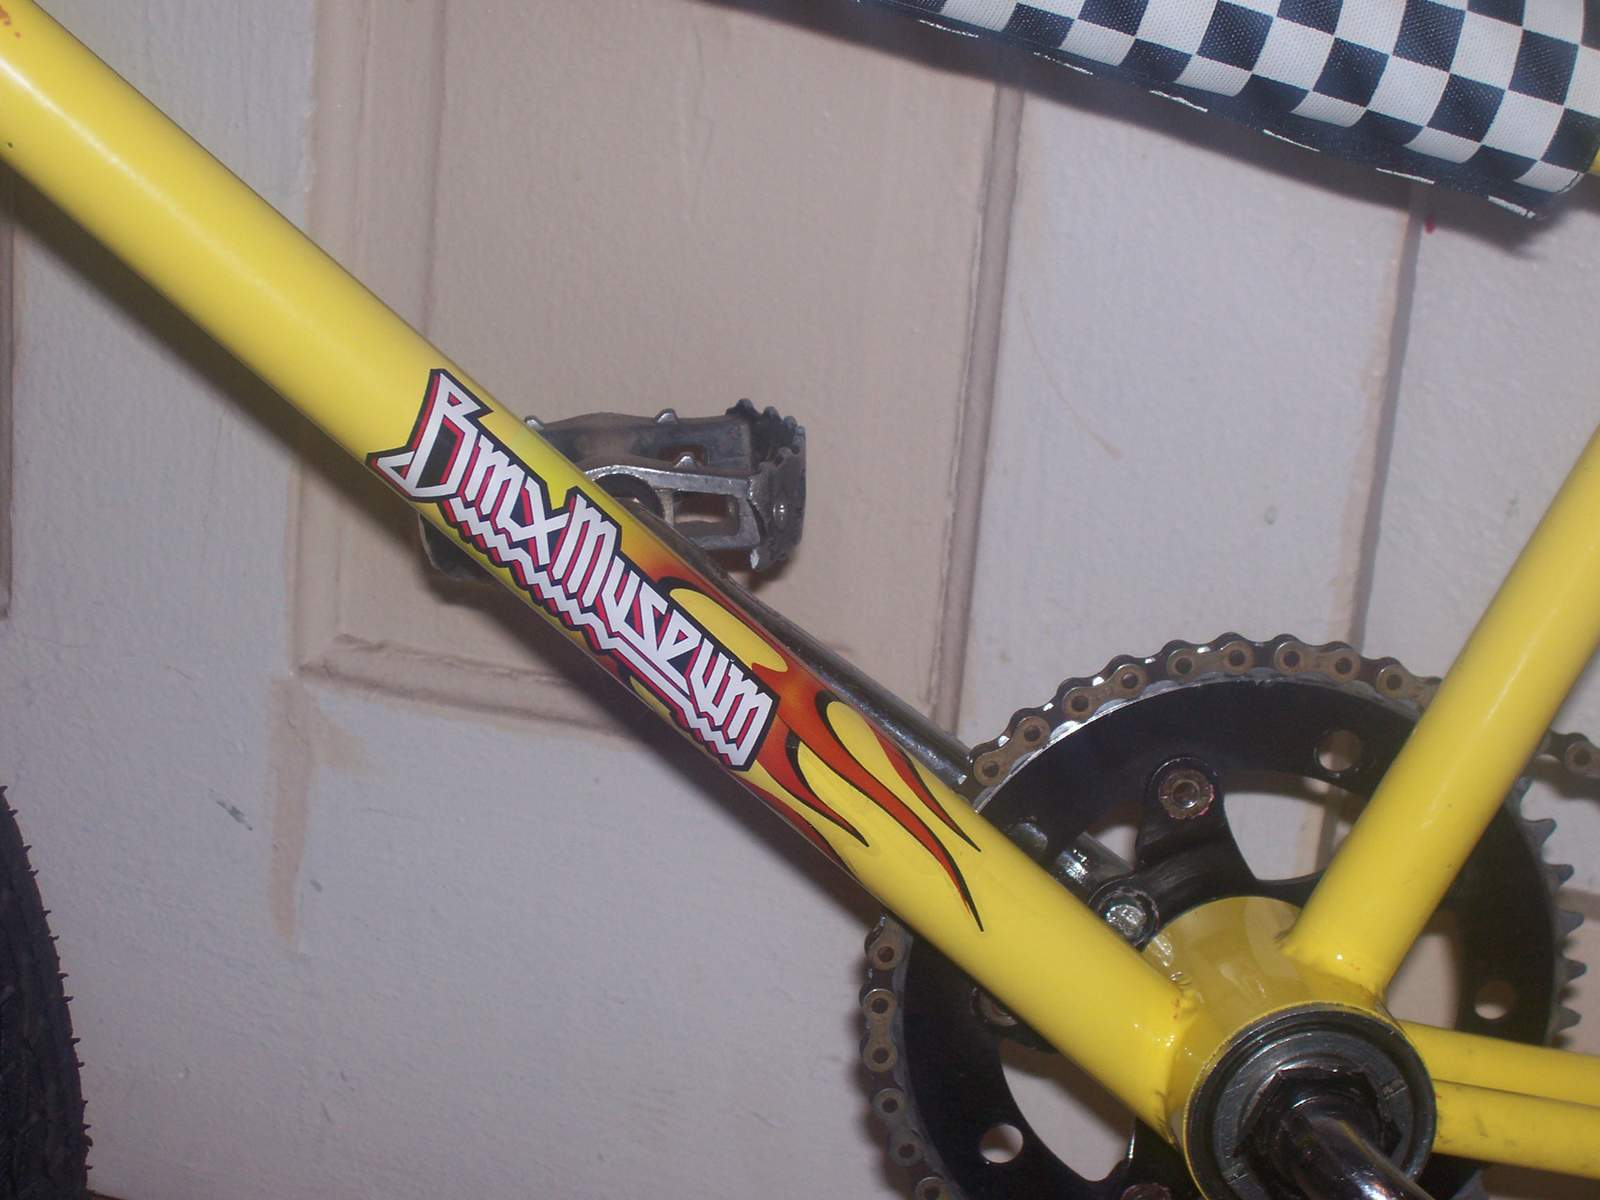 http://uploads.bmxmuseum.com/user-images/61851/100_696258426a0cb7.jpg